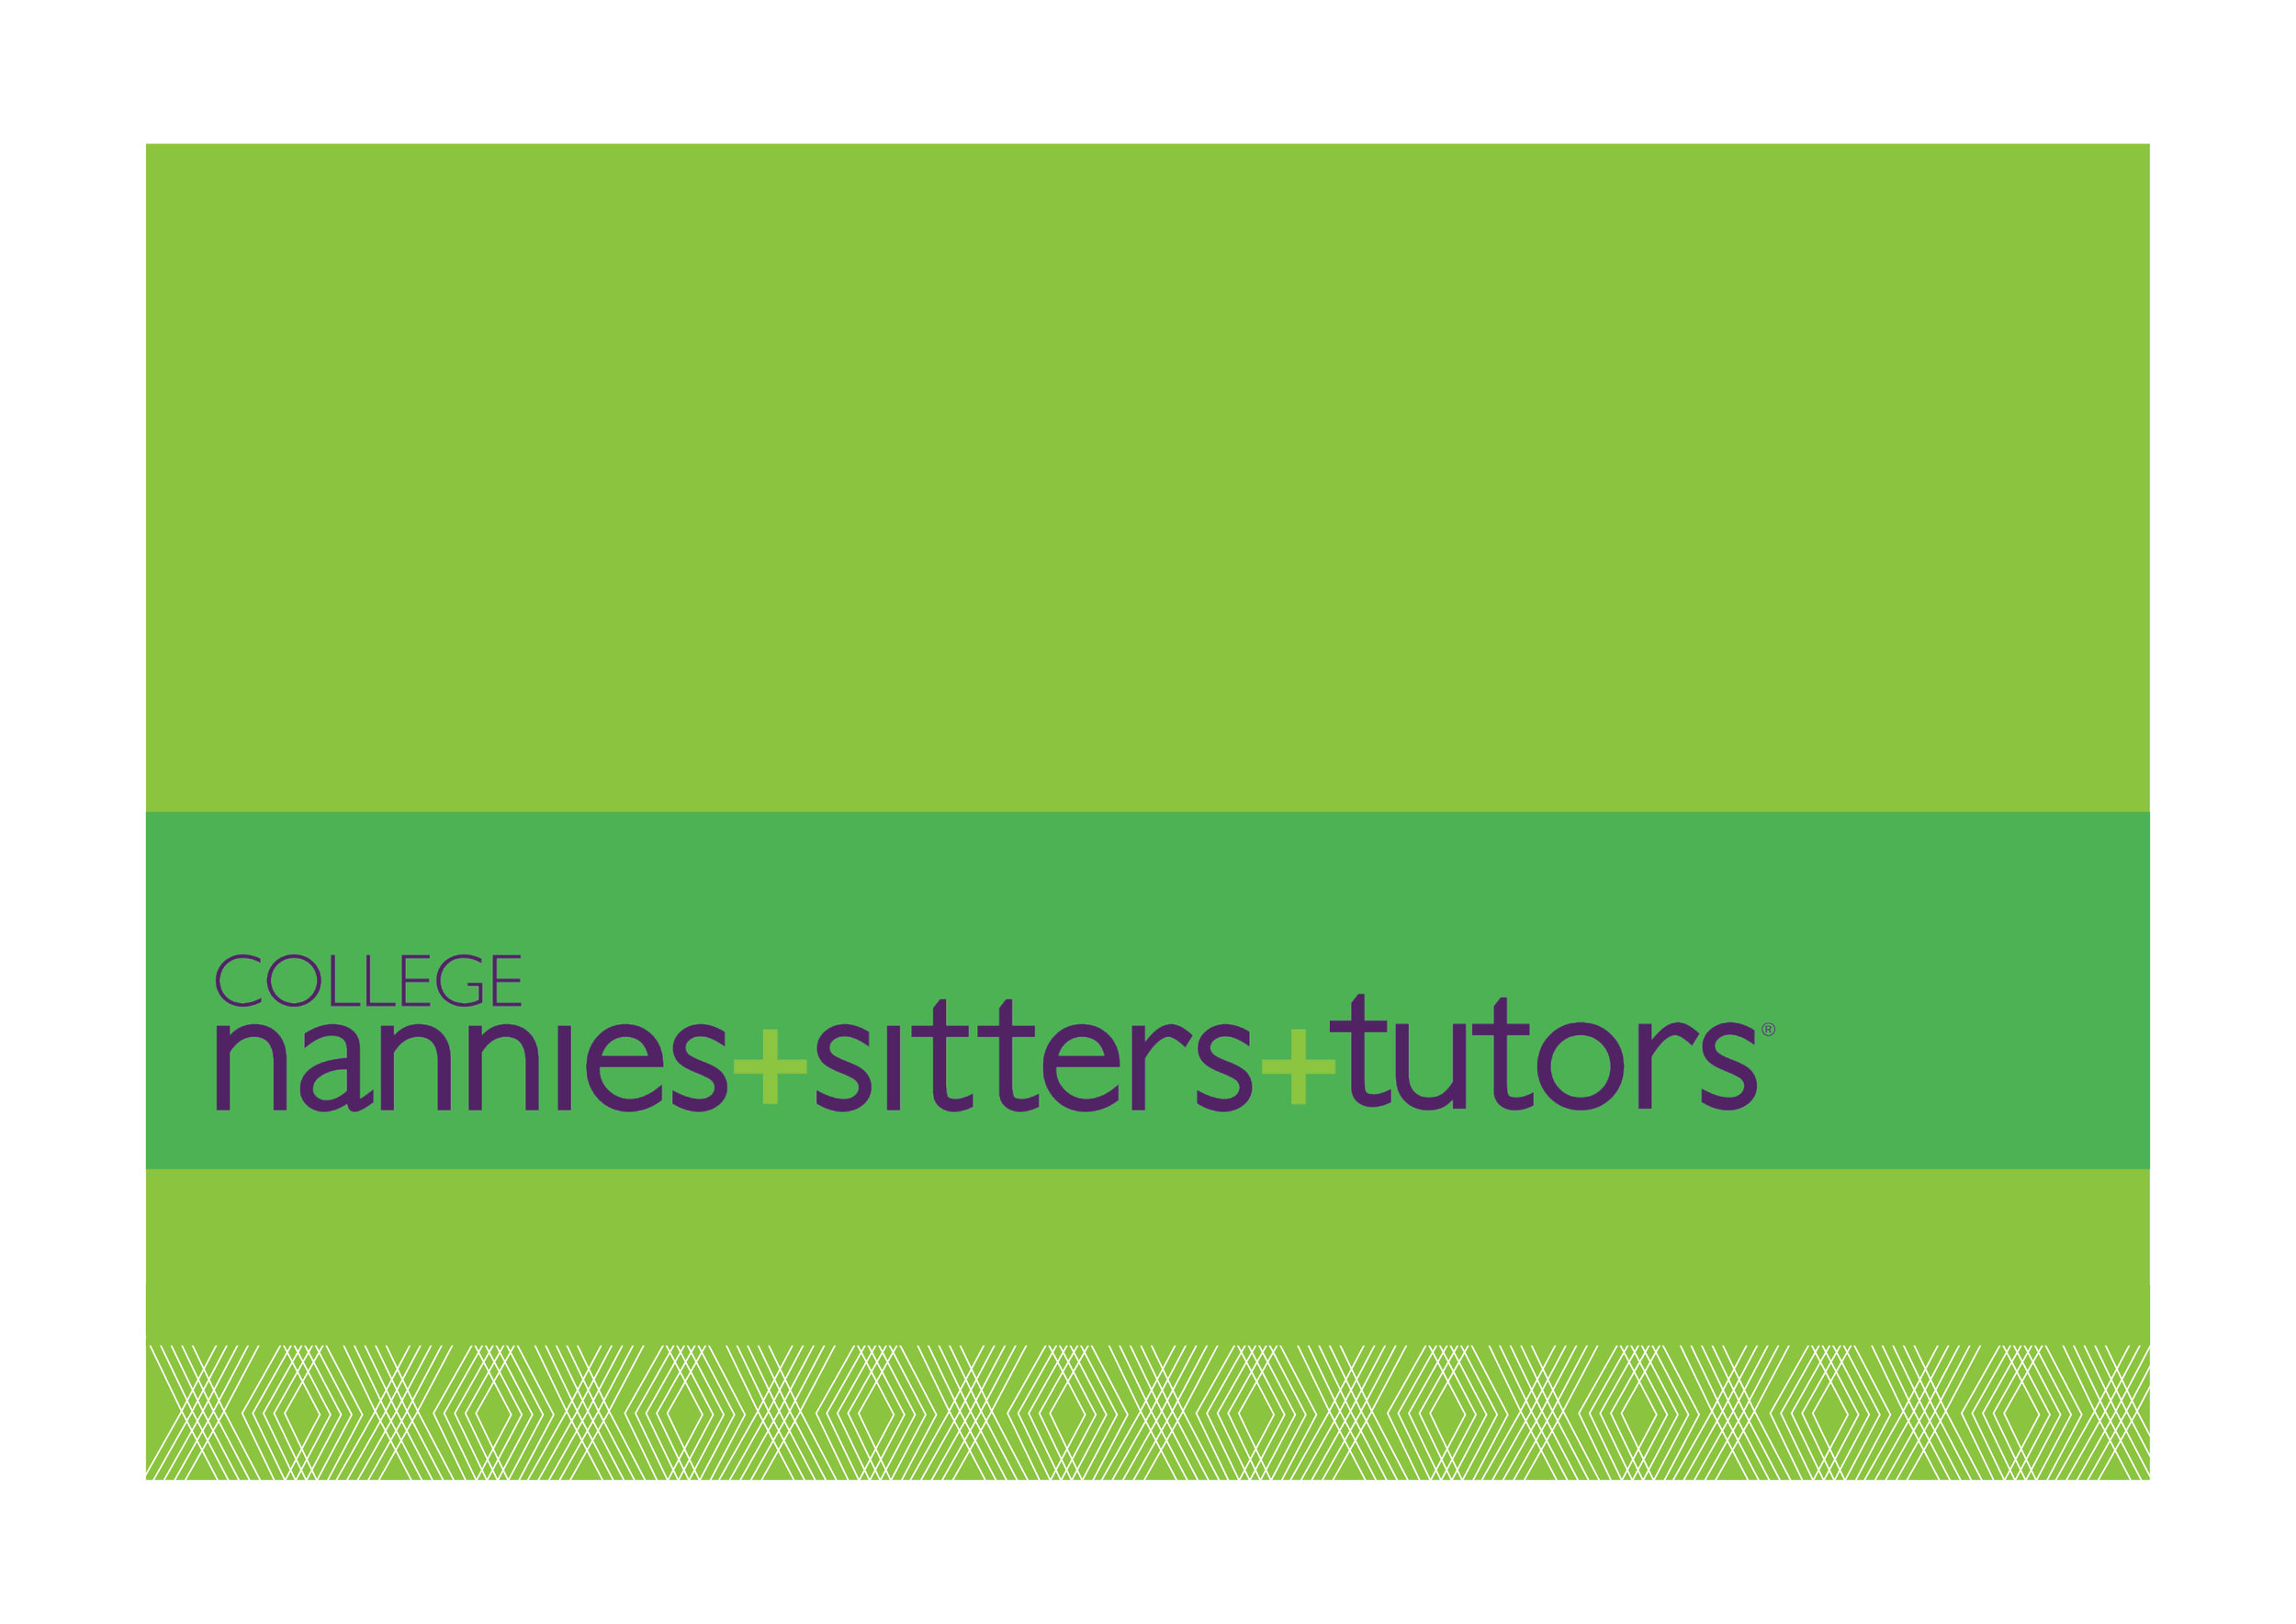 COLLEGE NANNIES + TUTORS + SITTERS   Visual brand refresh for each business line | Creative marketing campaigns for each business line | Template system for direct mail, digital and print   advertising, flyers, social media | Style guidelines       At home, Mom is CEO—and with busy work, school and activity schedules, that's no small job. Our creative puts an engaging new spin on a tried-and-true solution: Professional tutors and kid-care experts who know how to help Mom succeed.